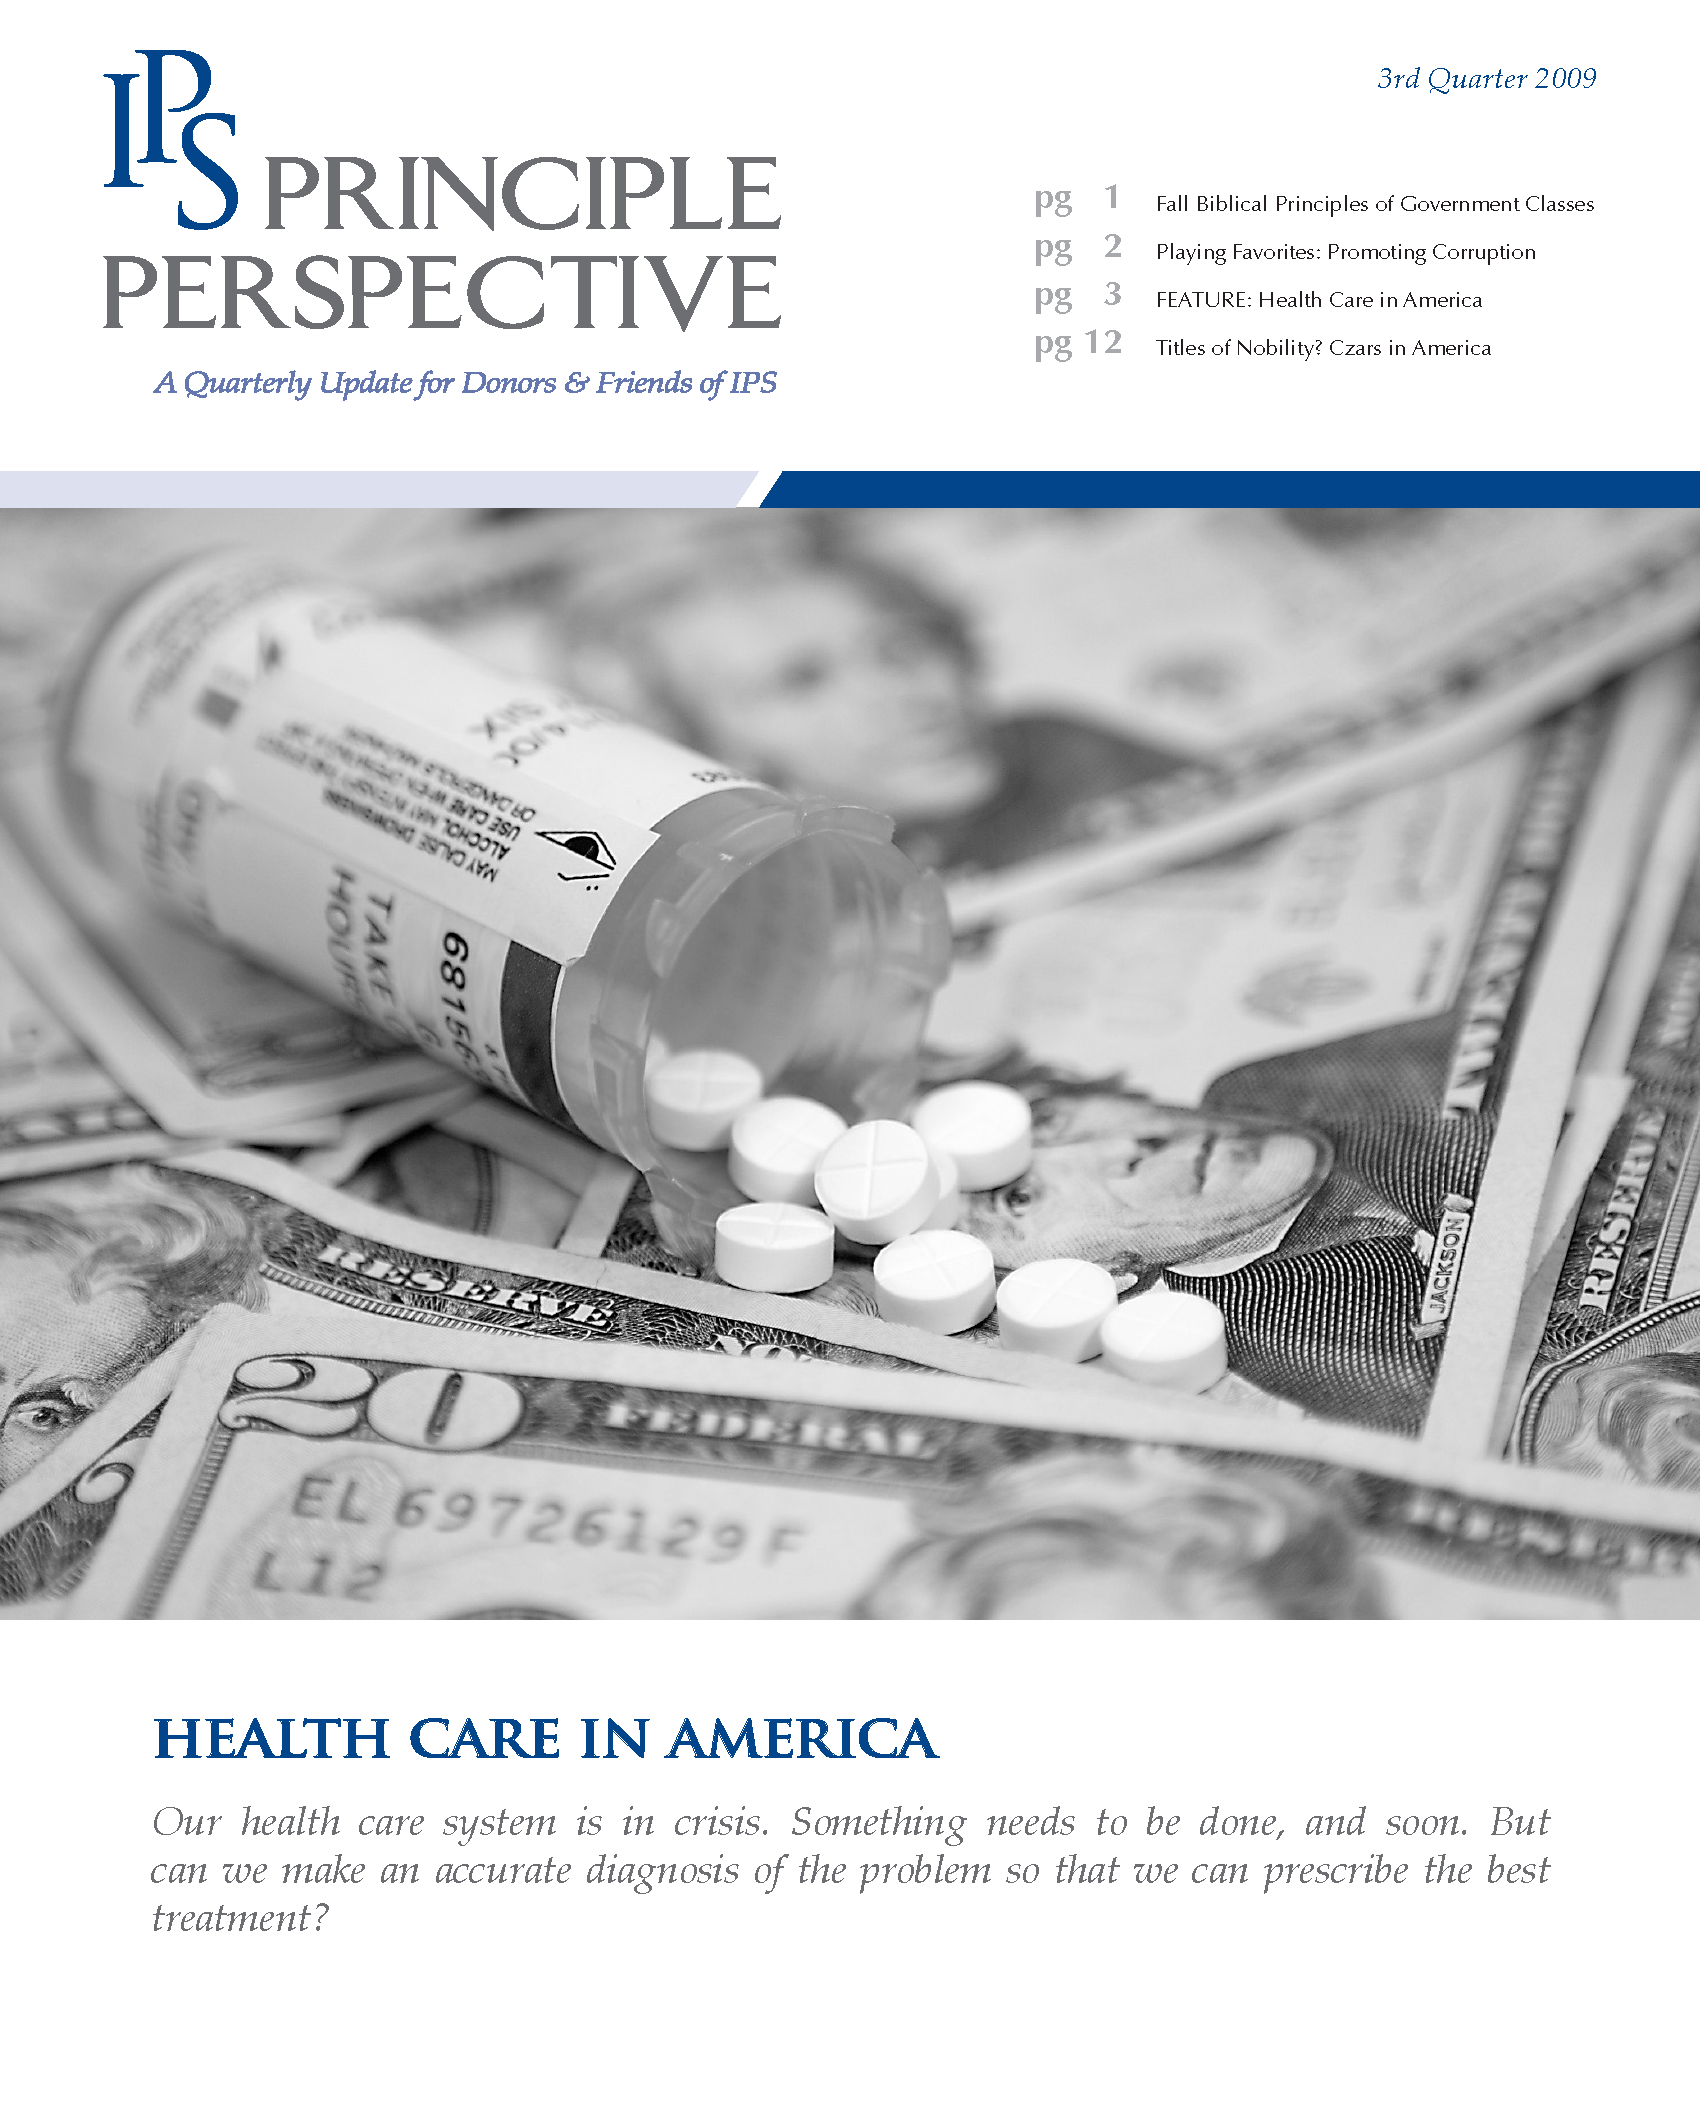 Principle Perspective - Health Care in America